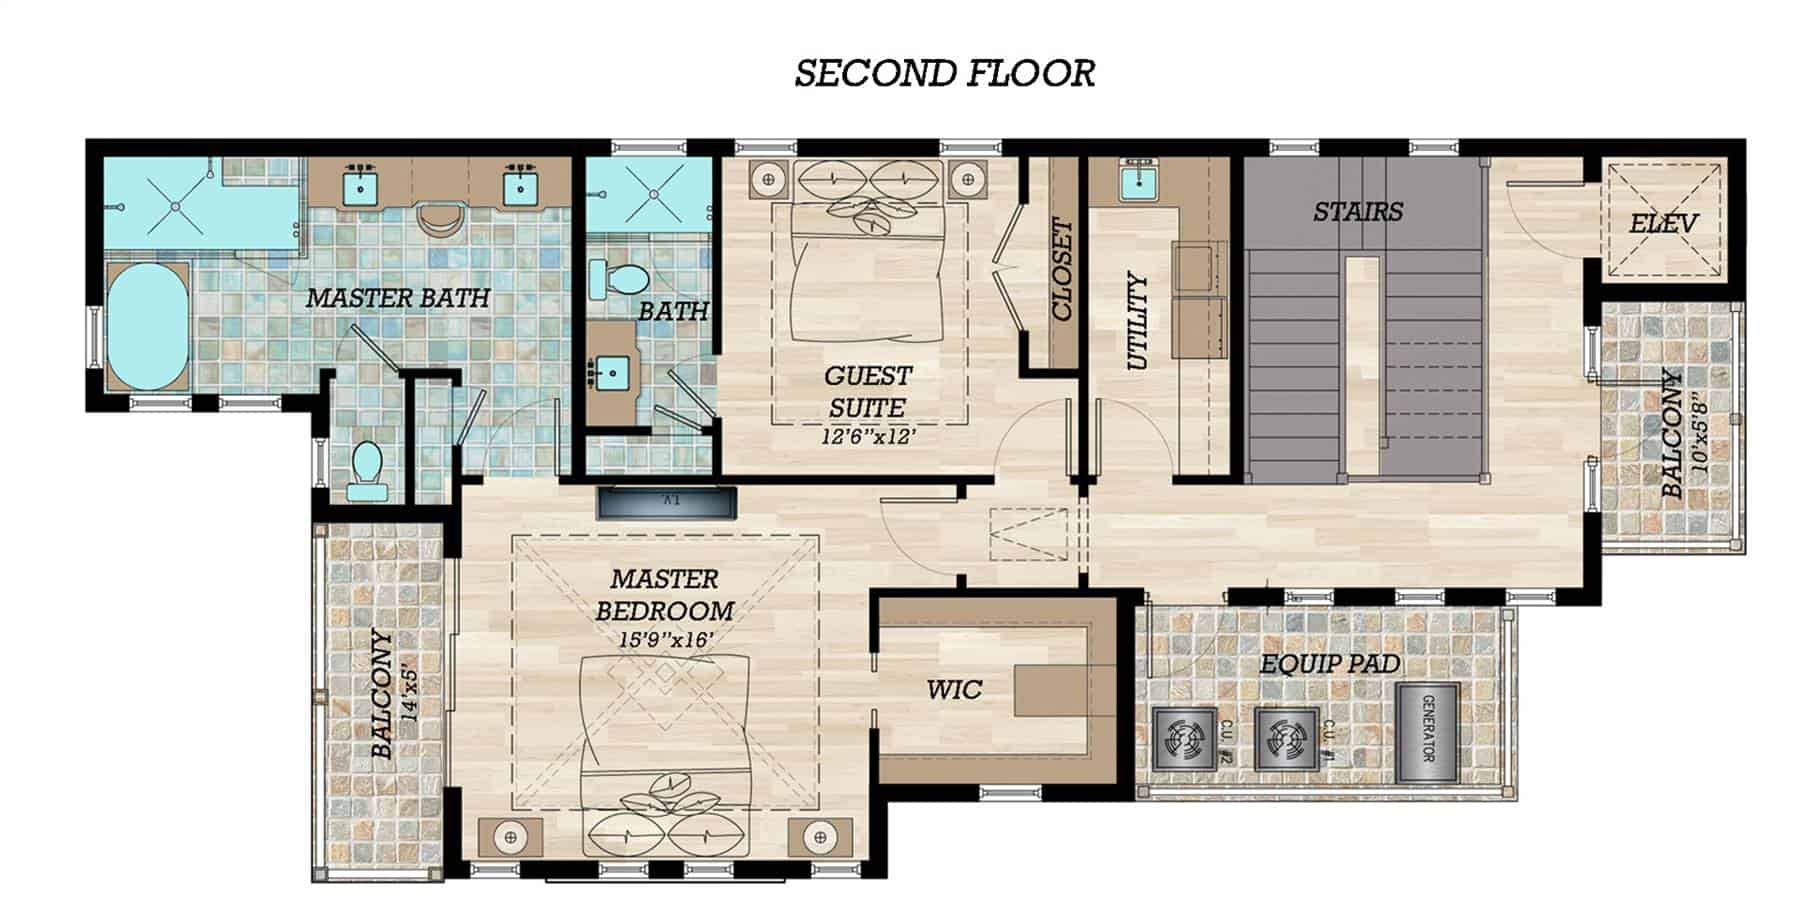 Second level floor plan with utility room, another guest suite and a primary bedroom with a luxury bath, spacious walk-in closet, and a private balcony.